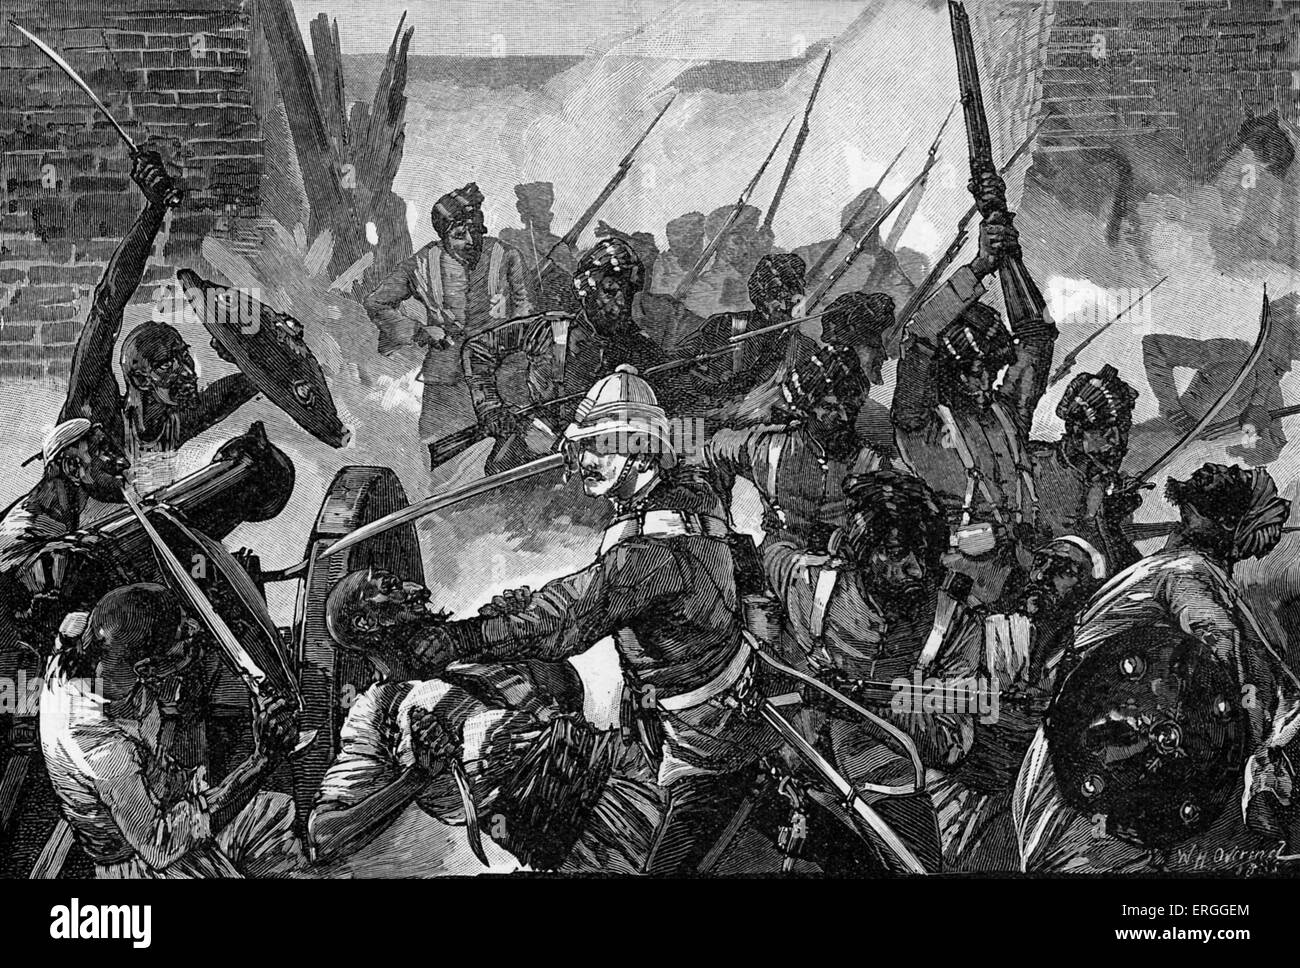 Attack on the British Residency, Kabul during the Second Anglo- Afgan War, 1879.  War between Britain and Afghanistan, - Stock Image